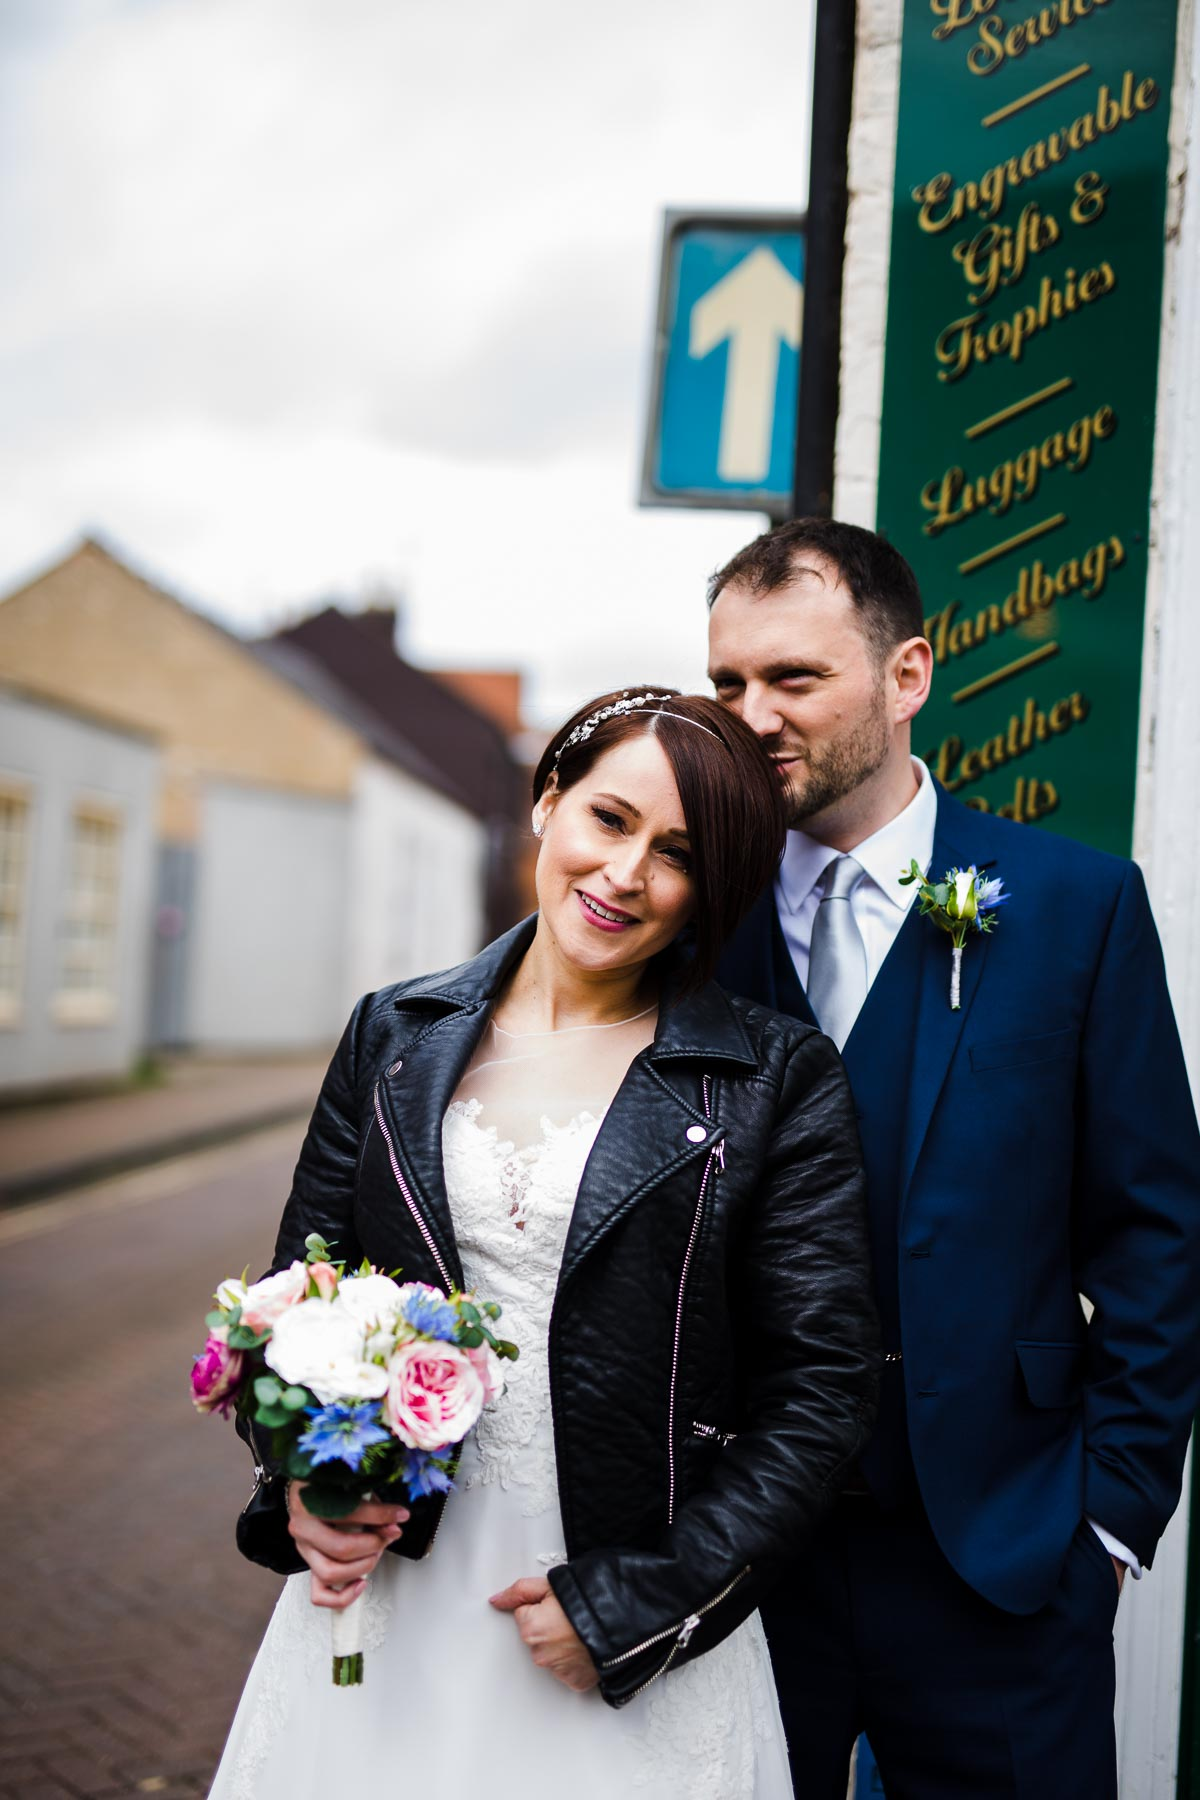 Street wedding photography in buckinghamshire